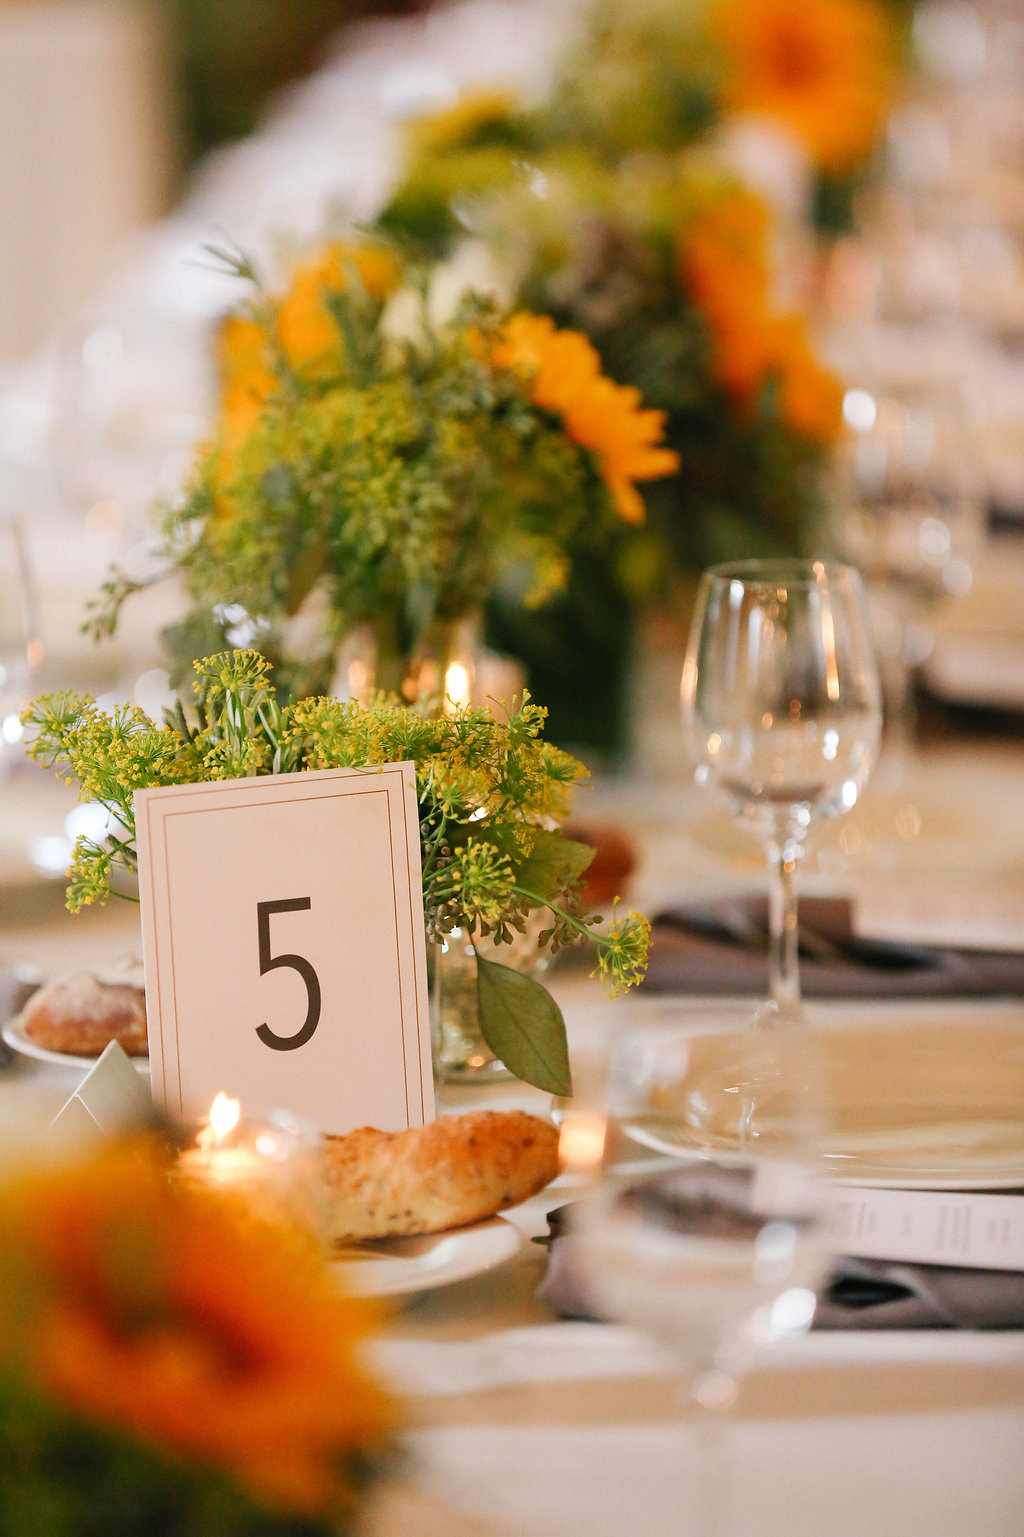 Firehouse Andersonville Chicago Illinois Autumn Wedding LGBTQ J.Crew Leah Moyers Photography